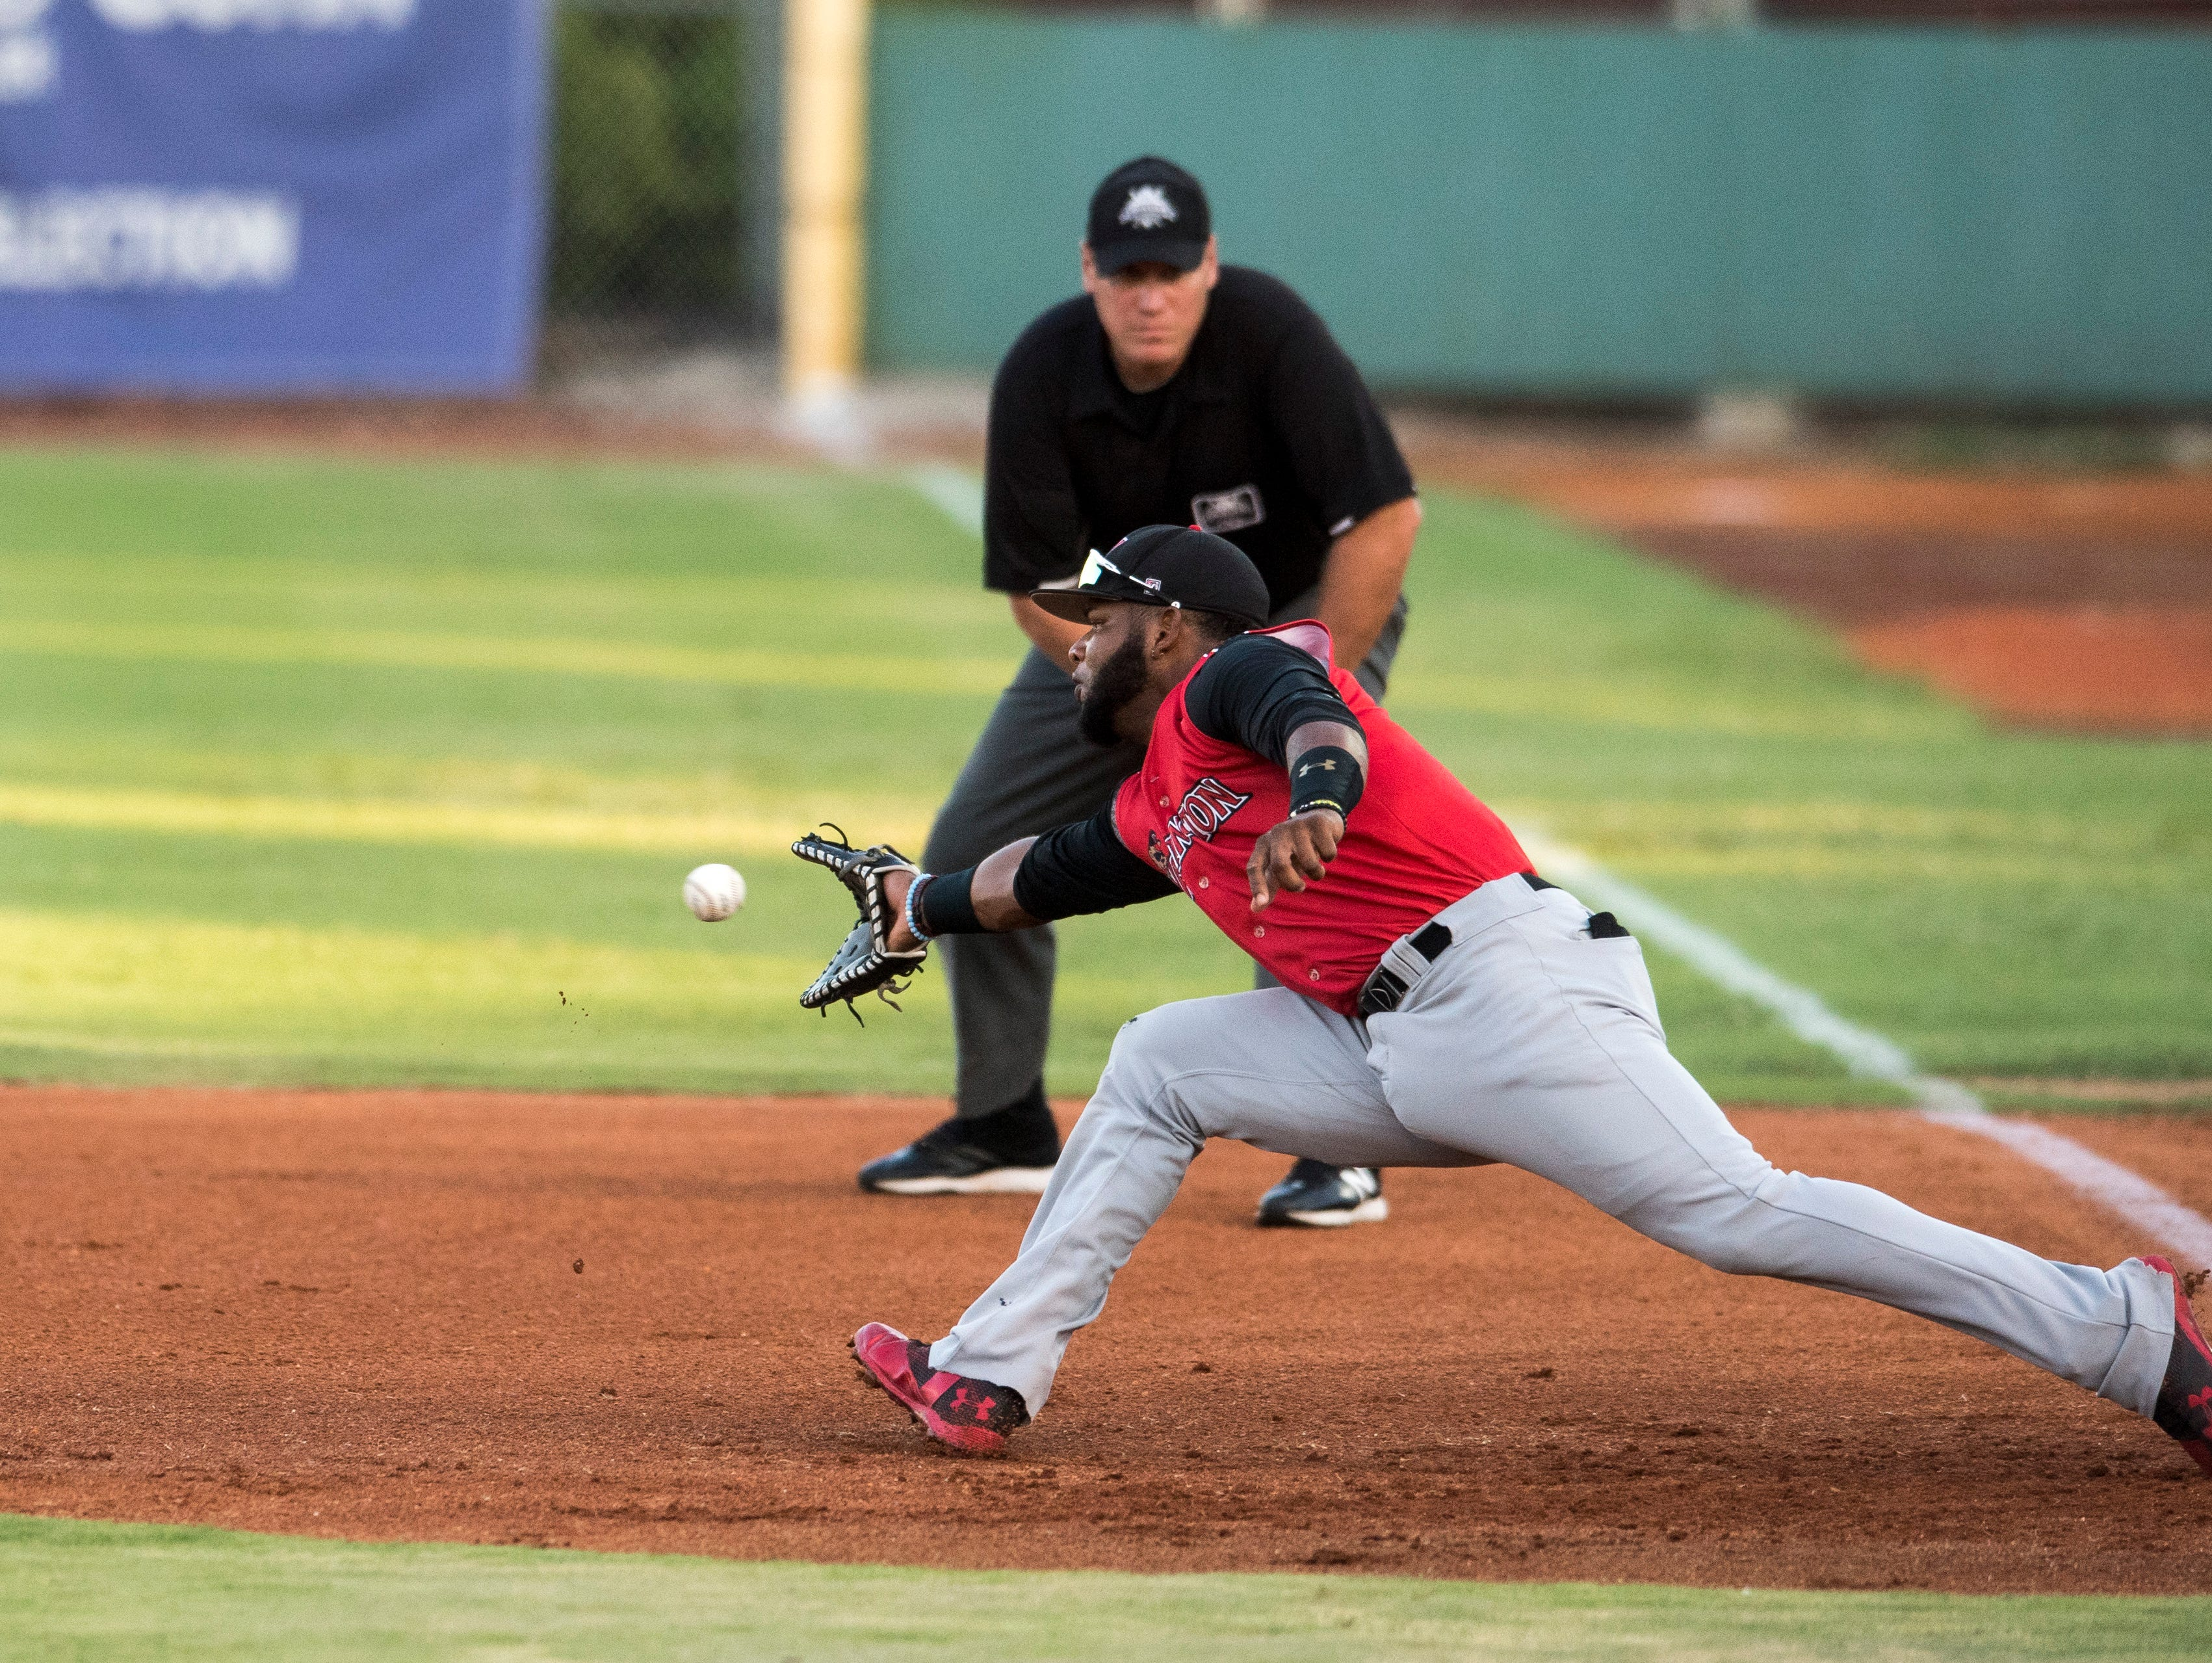 Washington's Reydel Medina (21) reaches for the ball at first base during game one of the Frontier League Division Series at Bosse Field against the Evansville Otters Tuesday, September 4, 2018.